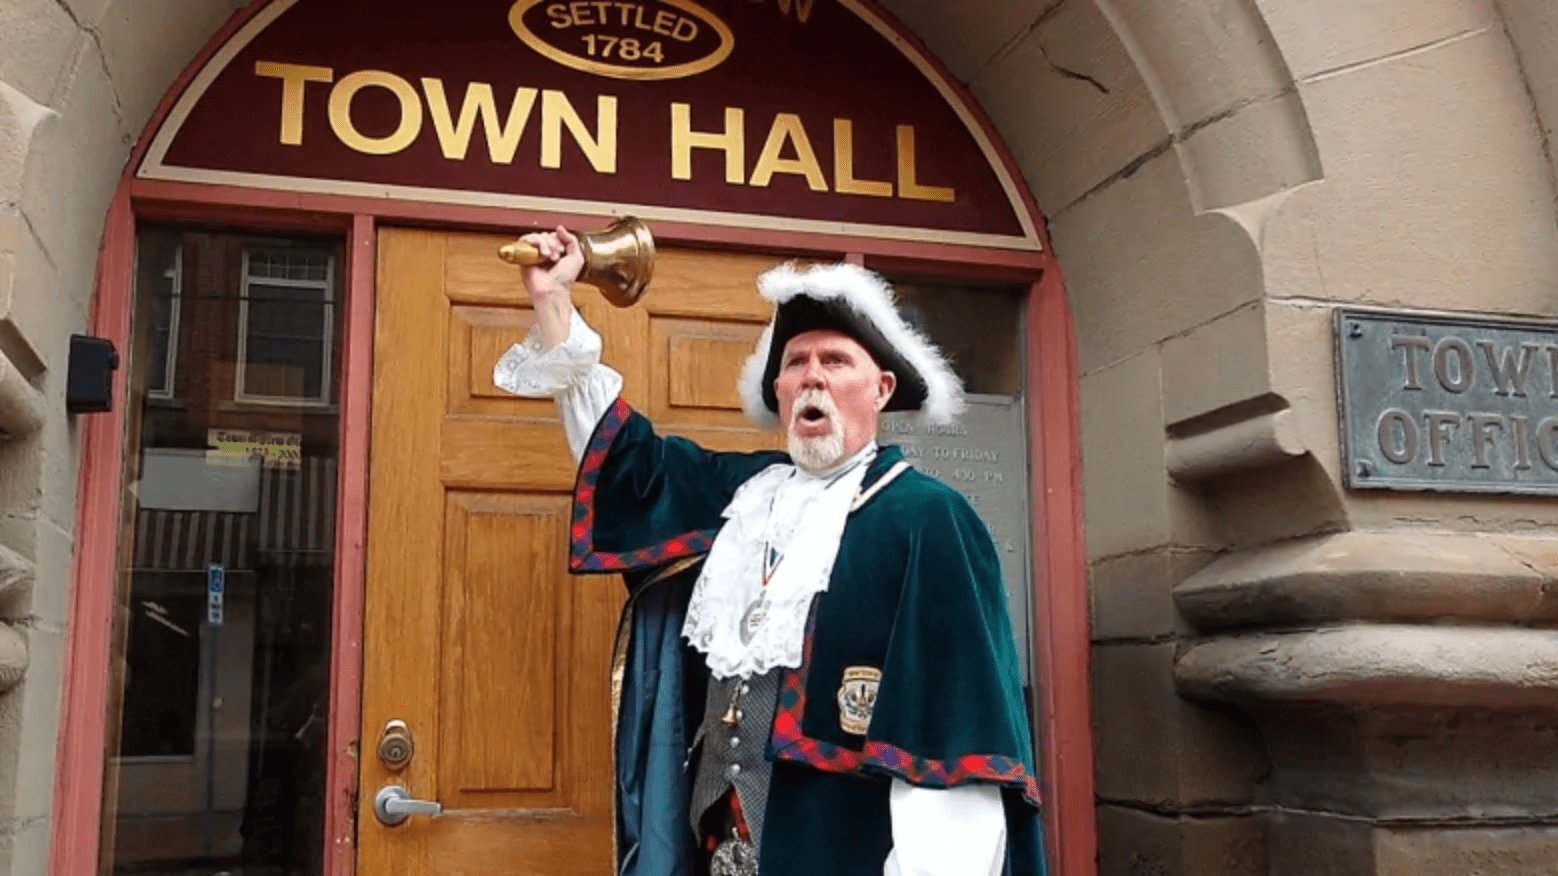 News from Nova Scotia: Meet the Town Crier Delivering Boston's Christmas Tree